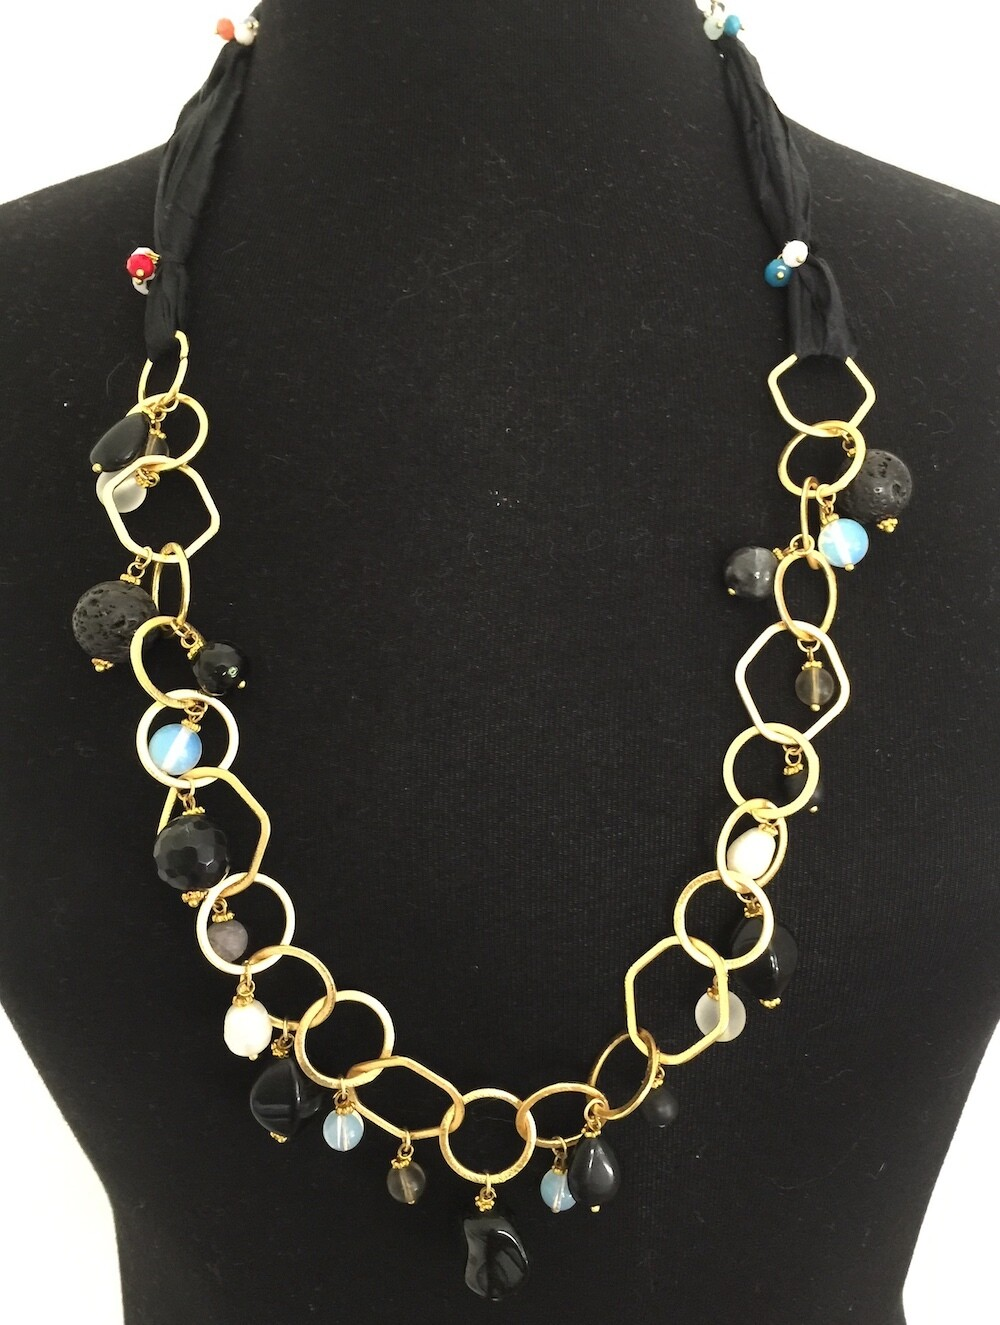 BN-52476 Gold plated stone necklace